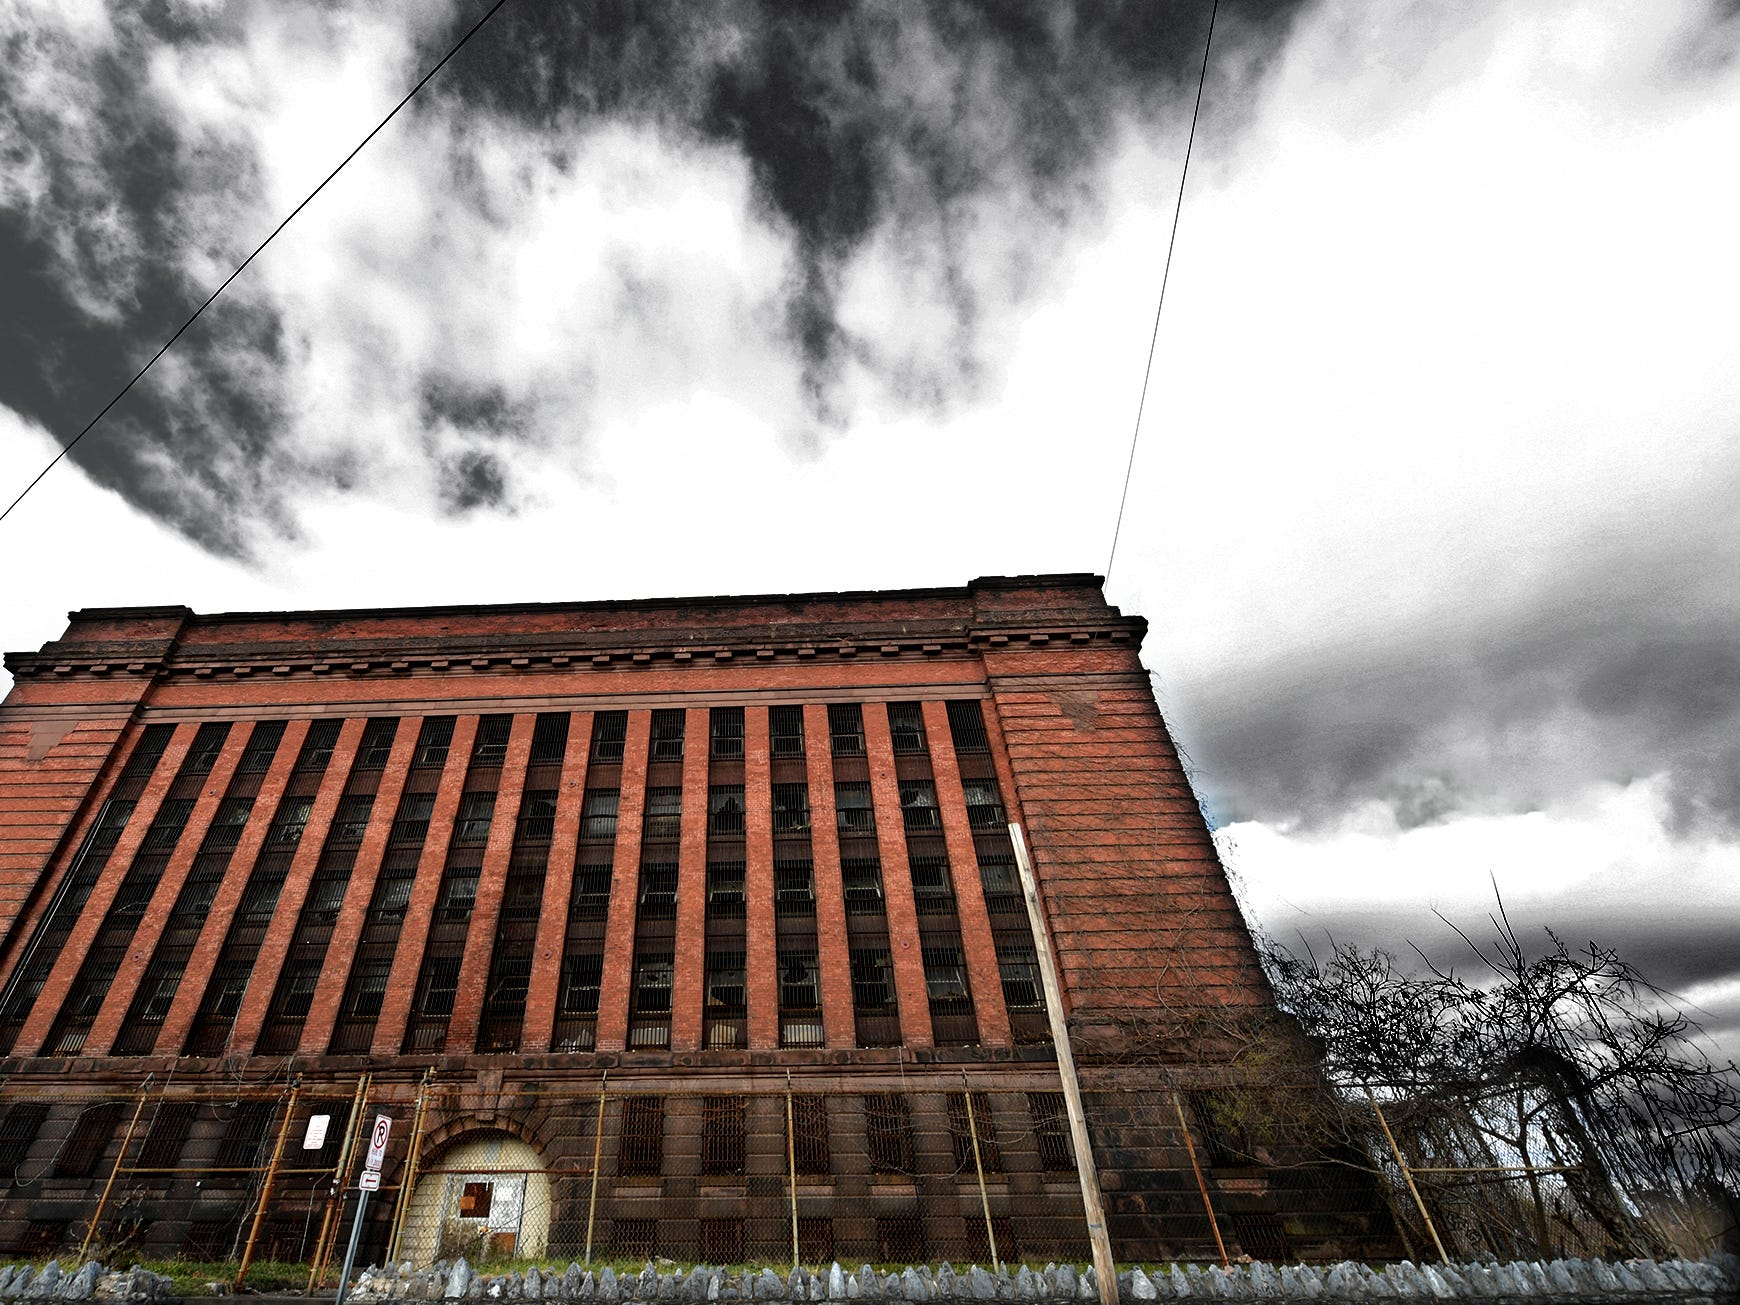 The former York County Prison on Chestnut Street in York City Wednesday, Nov. 28, 2018. United Fiber and Data has purchased the building and plans to incorporate the structure into a data center to accompany a 400-mile fiber-optic network it's building between New York and Virginia. Bill Kalina photo